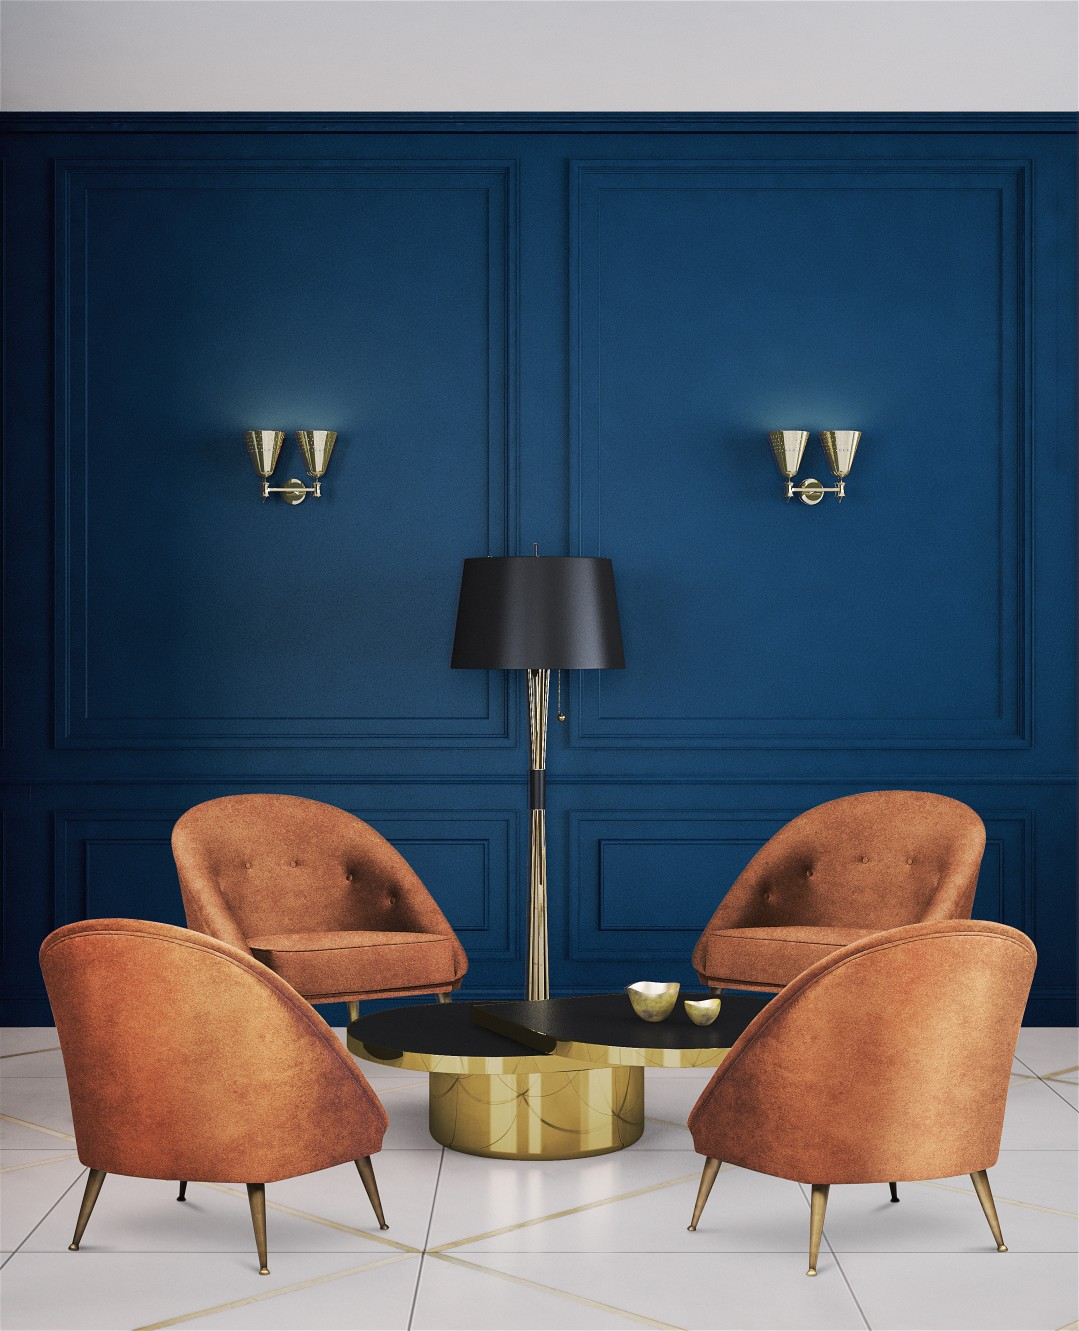 contemporary floor lamps contemporary floor lamps Contemporary Floor Lamps That Will Be Brightening Maison et Objet! Contemporary Floor Lamps That Will Be brightening Maison et Objet 3